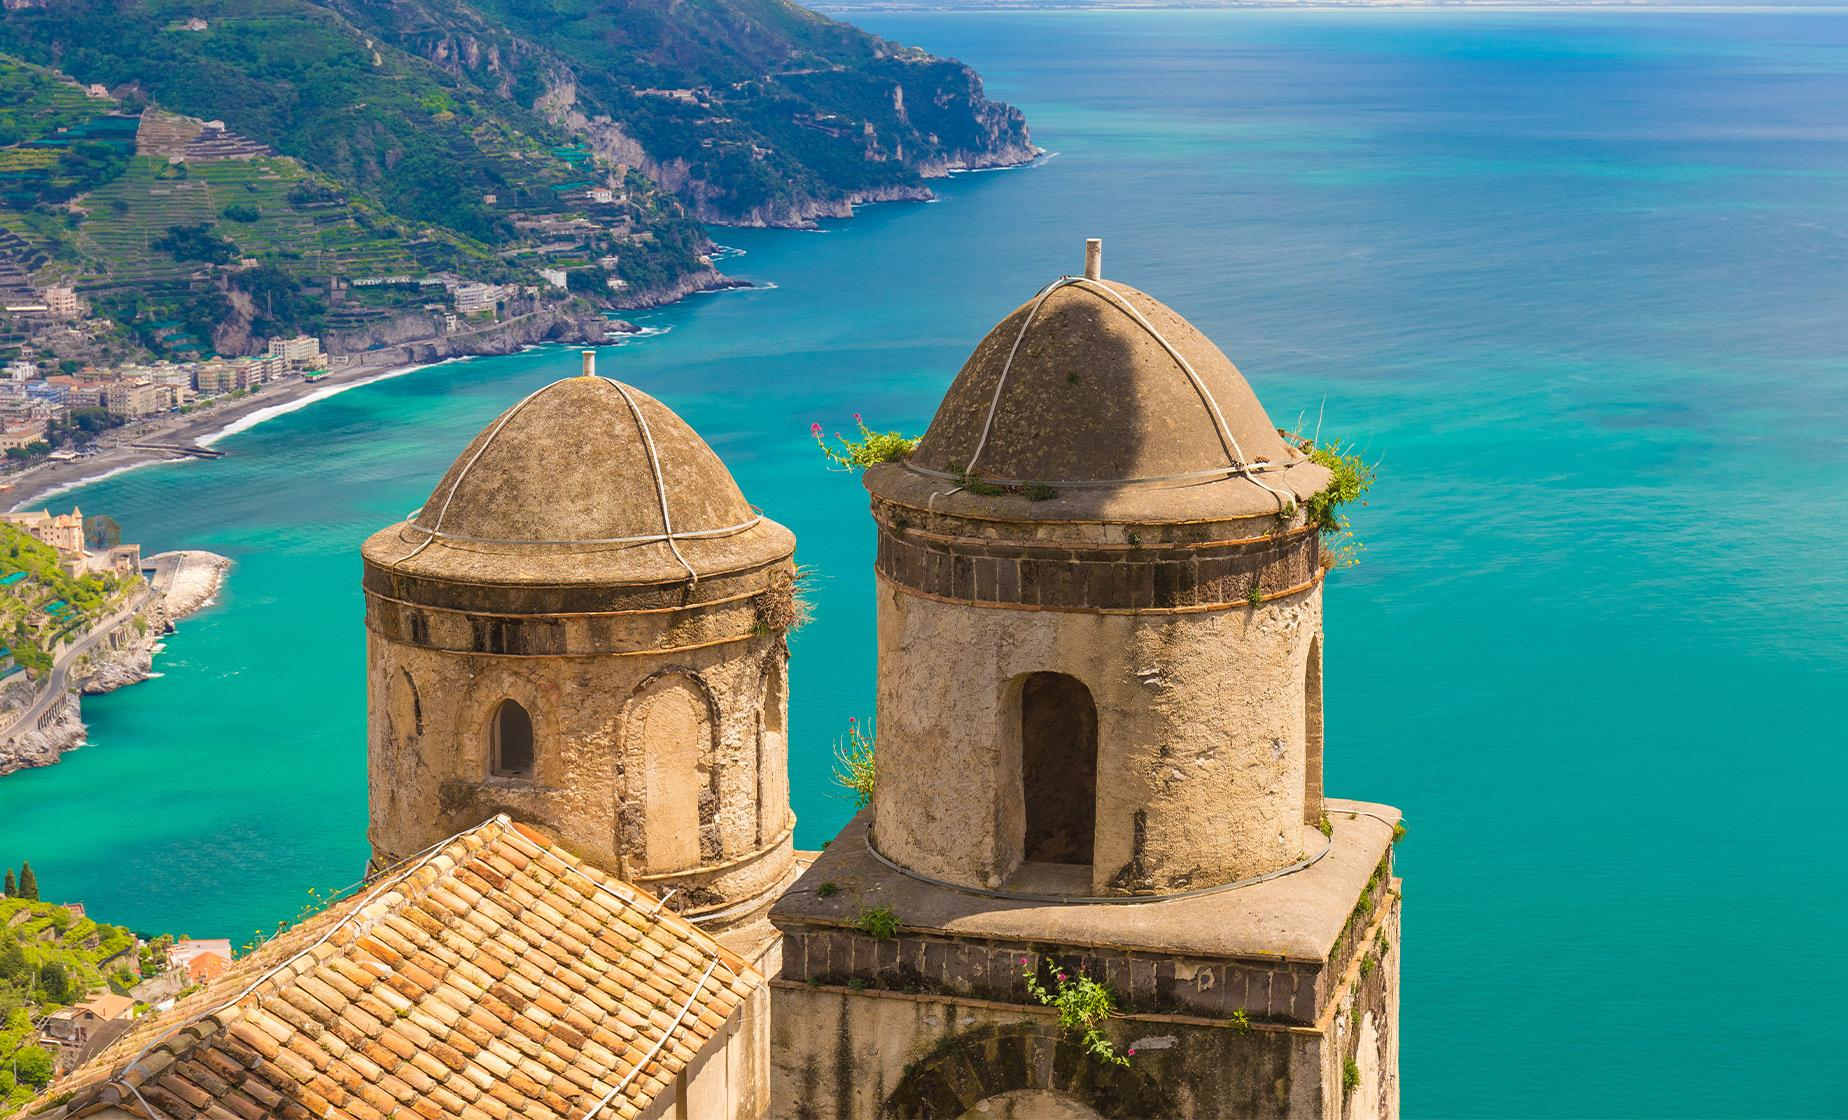 Private Splendors of the Amalfi Coast Tour from Sorrento